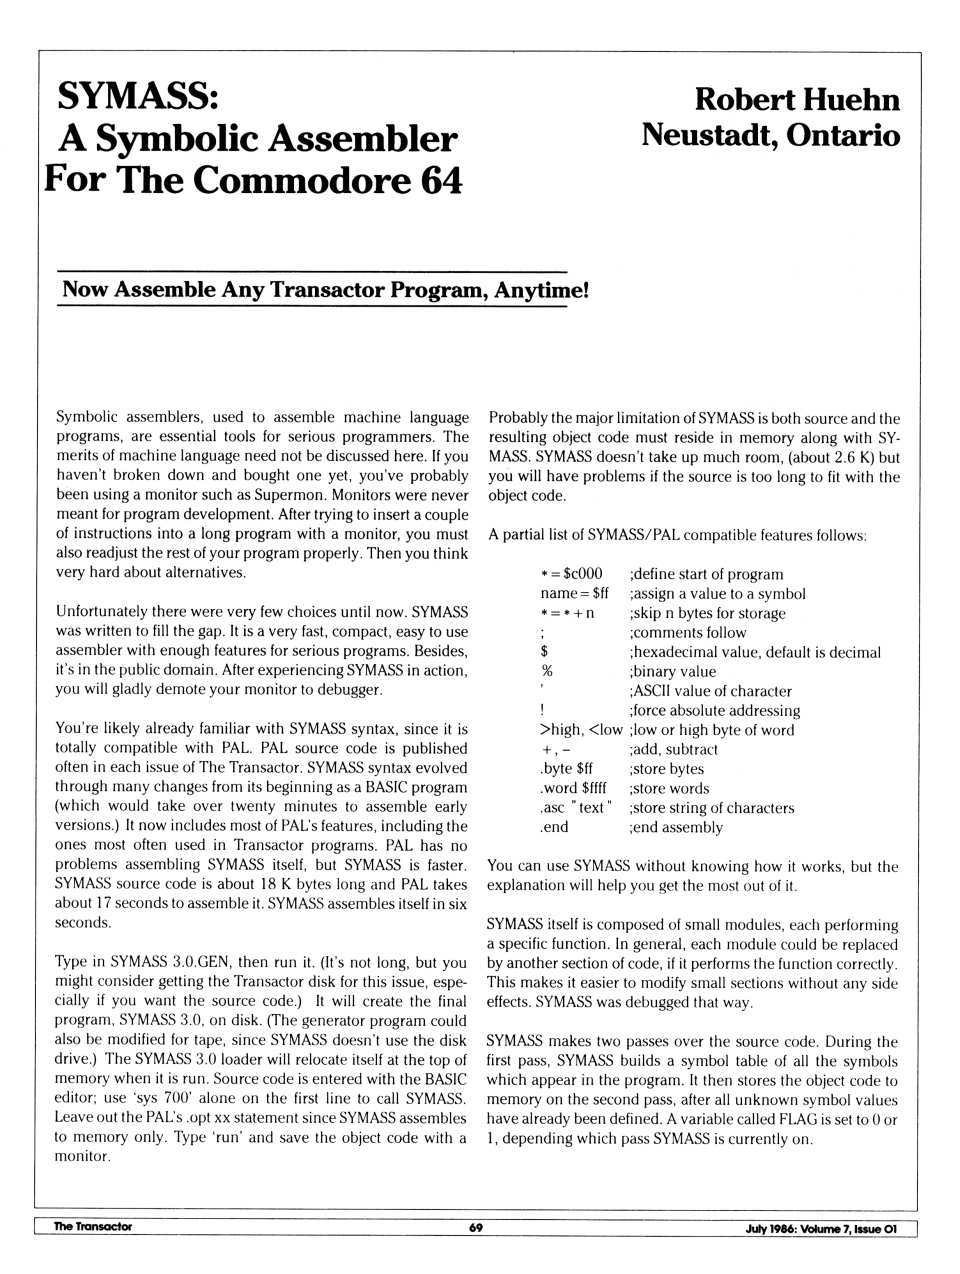 [SYMASS: A Symbolic Assembler for the Commodore 64 (1/8)]